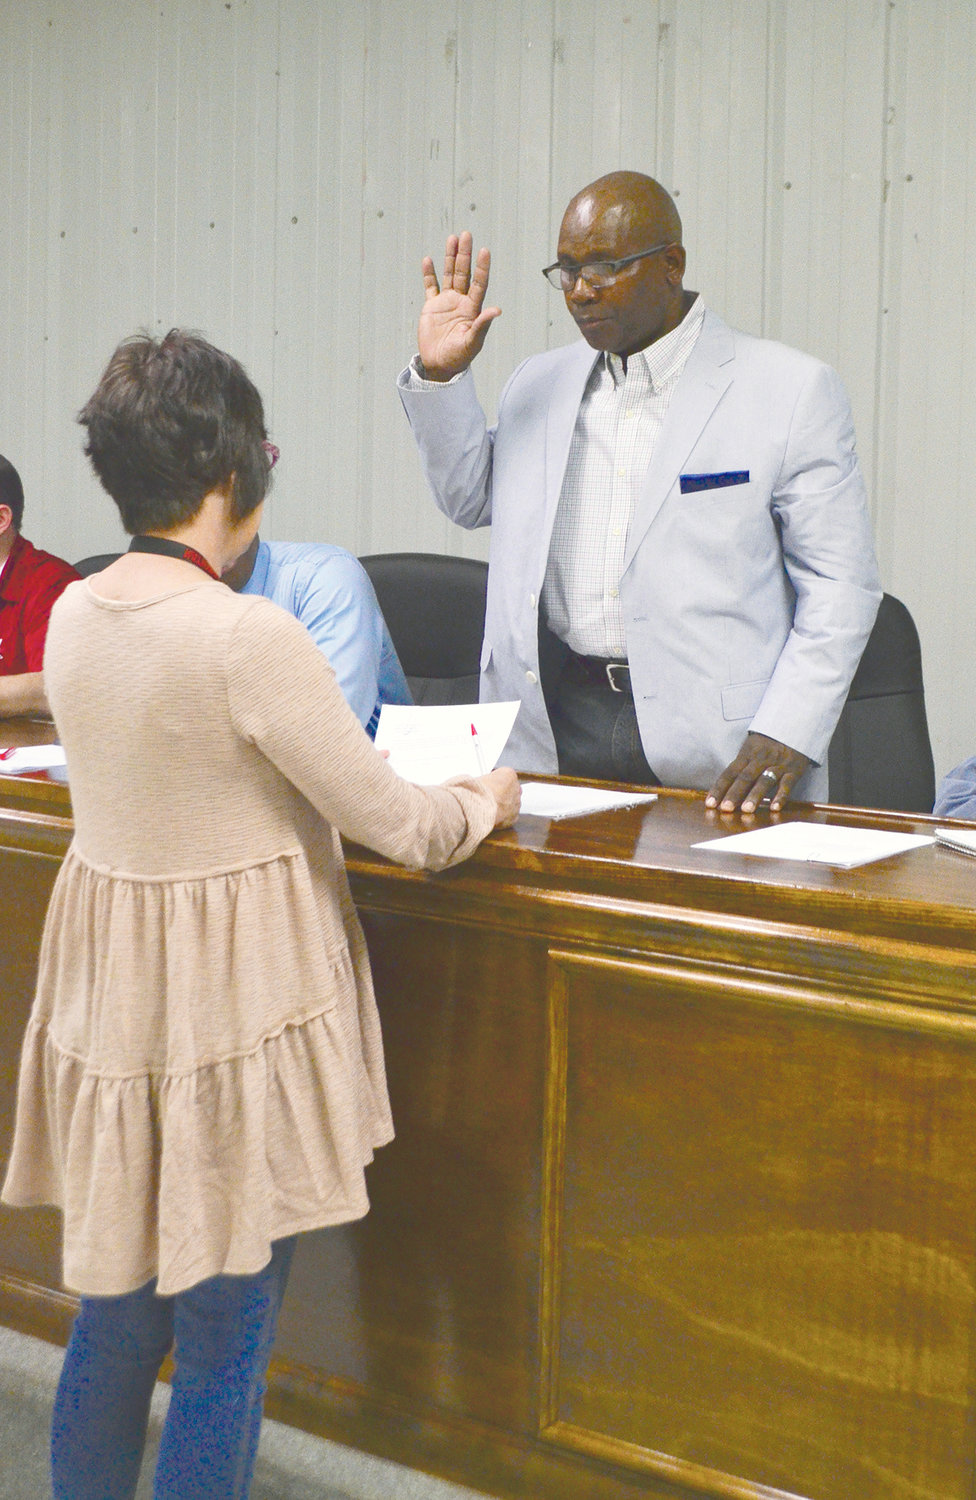 Rodney Harris, Oakman's new council member, is sworn in for a second time by Town Clerk Lisa Lockhart Monday.